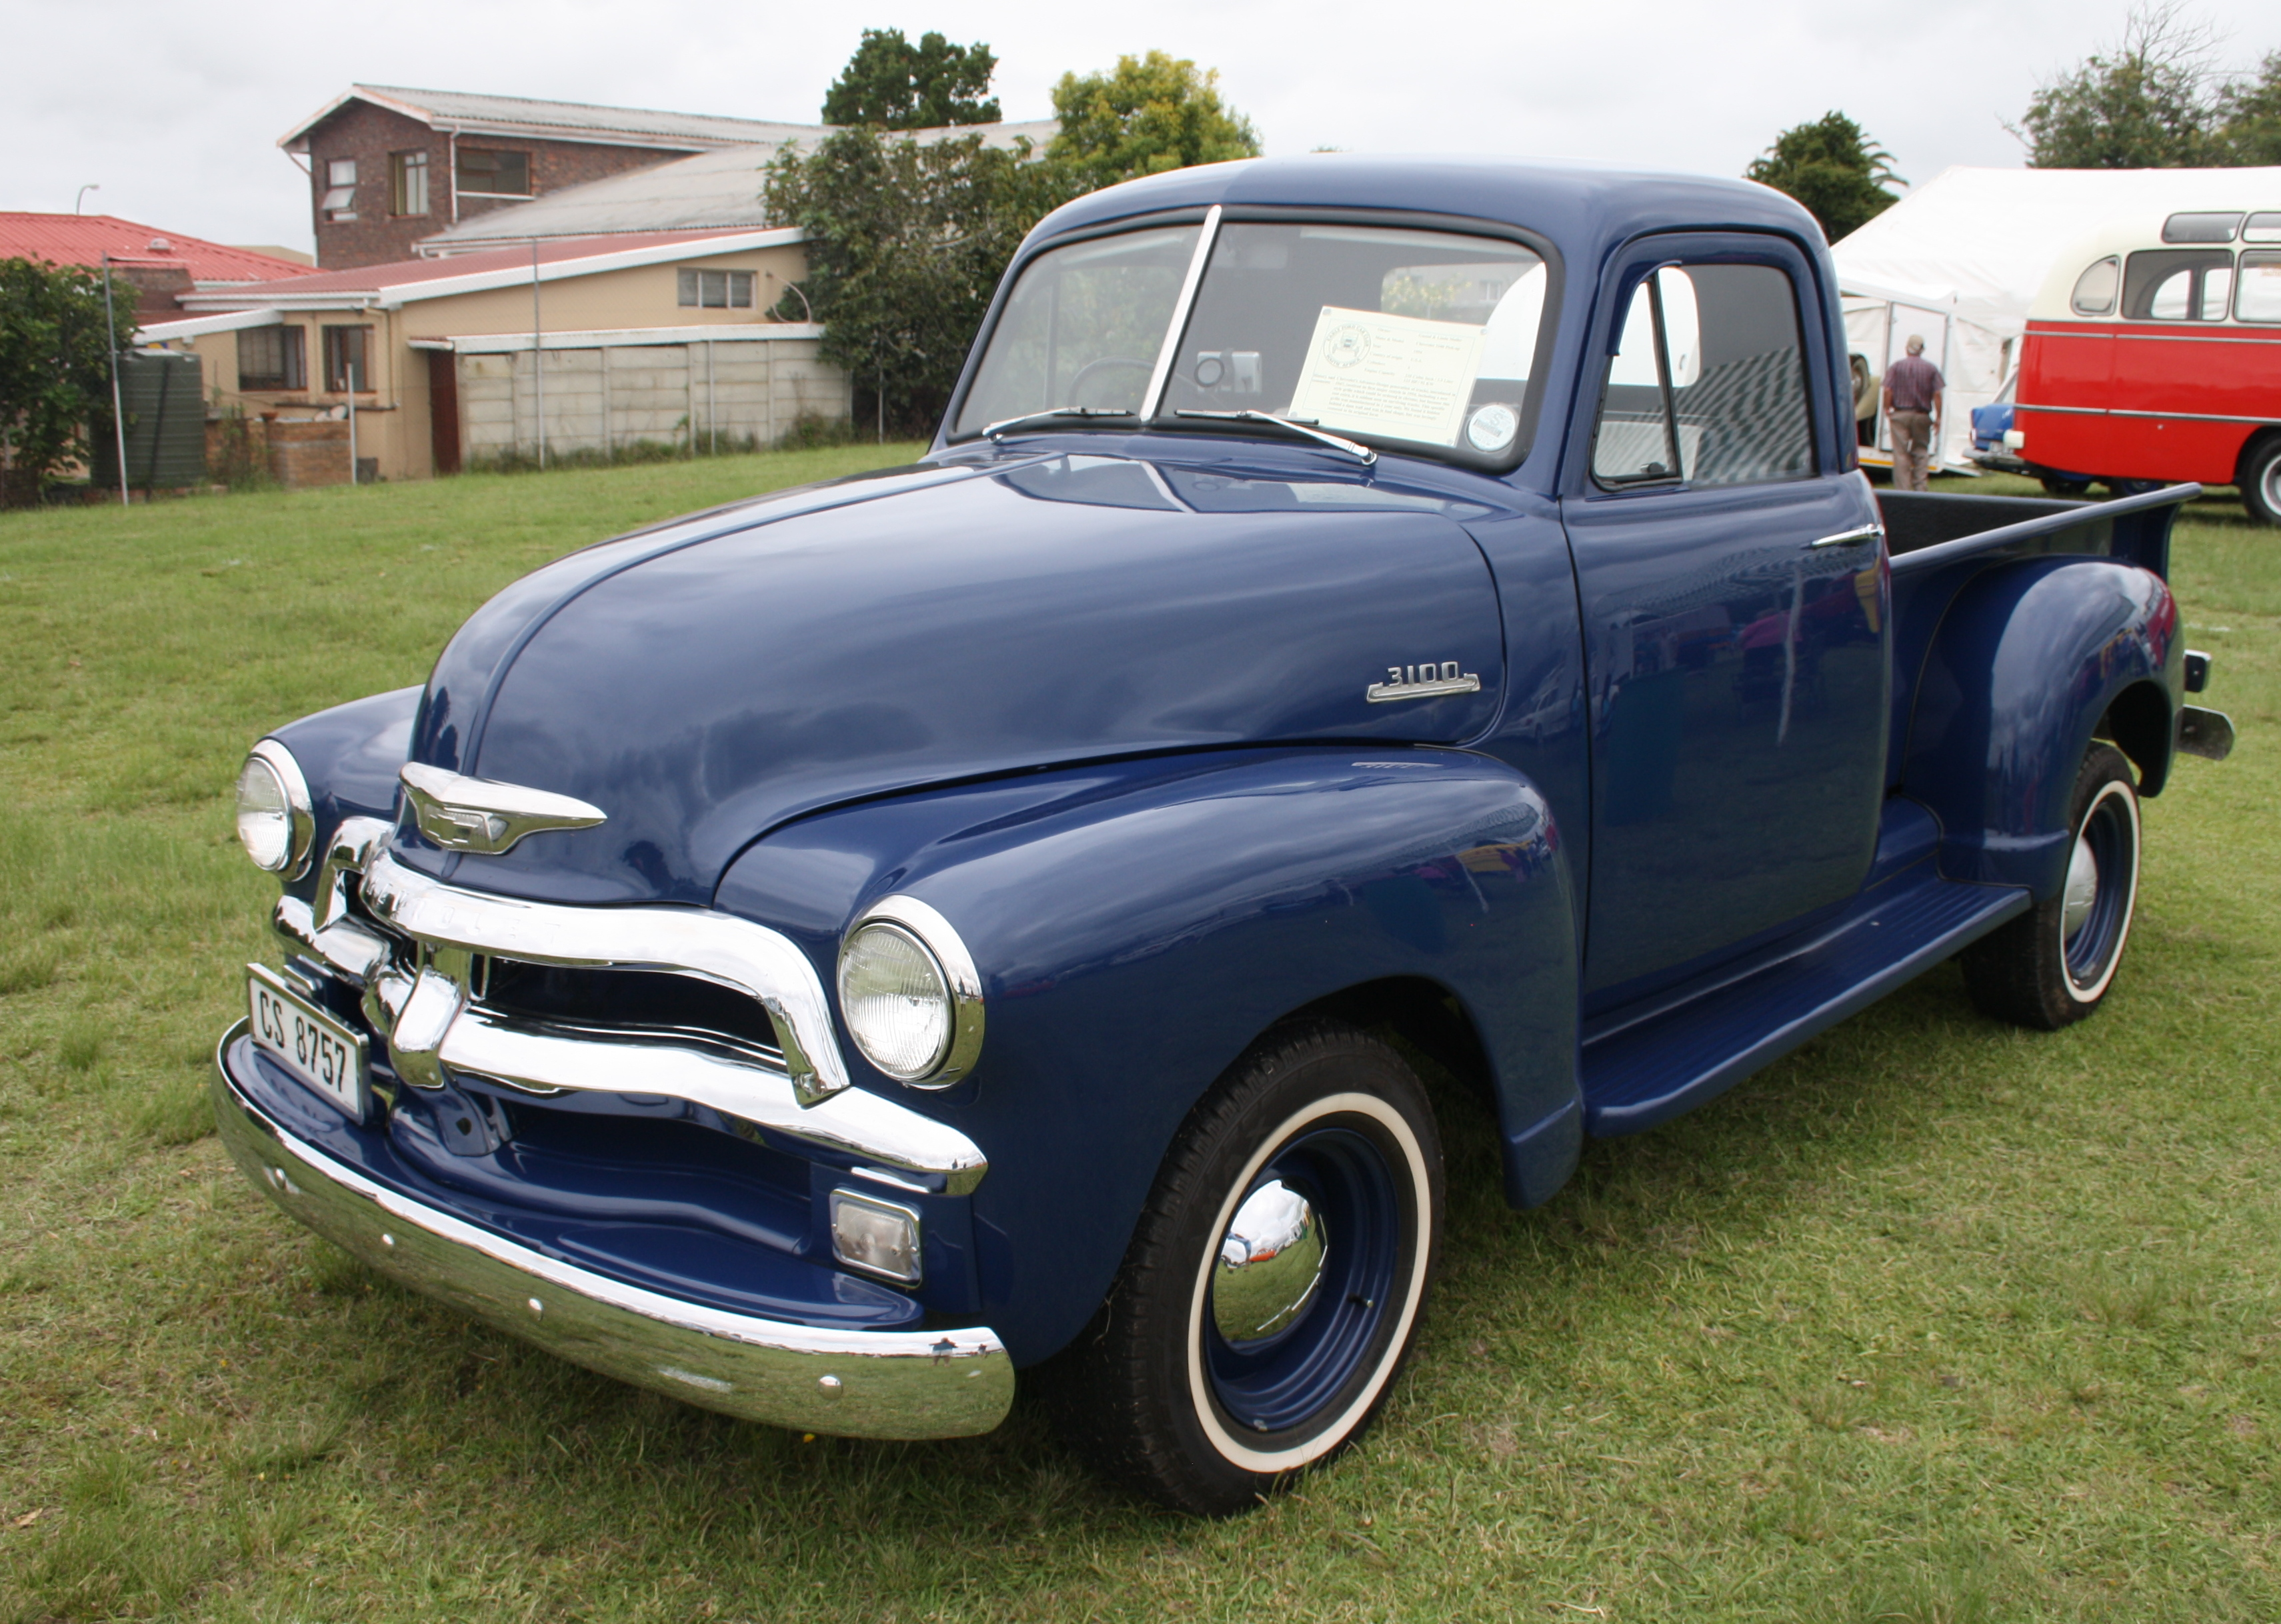 Old Chevy Truck >> File:1954 Chevrolet 3100 Pick Up (12403476424).jpg - Wikimedia Commons